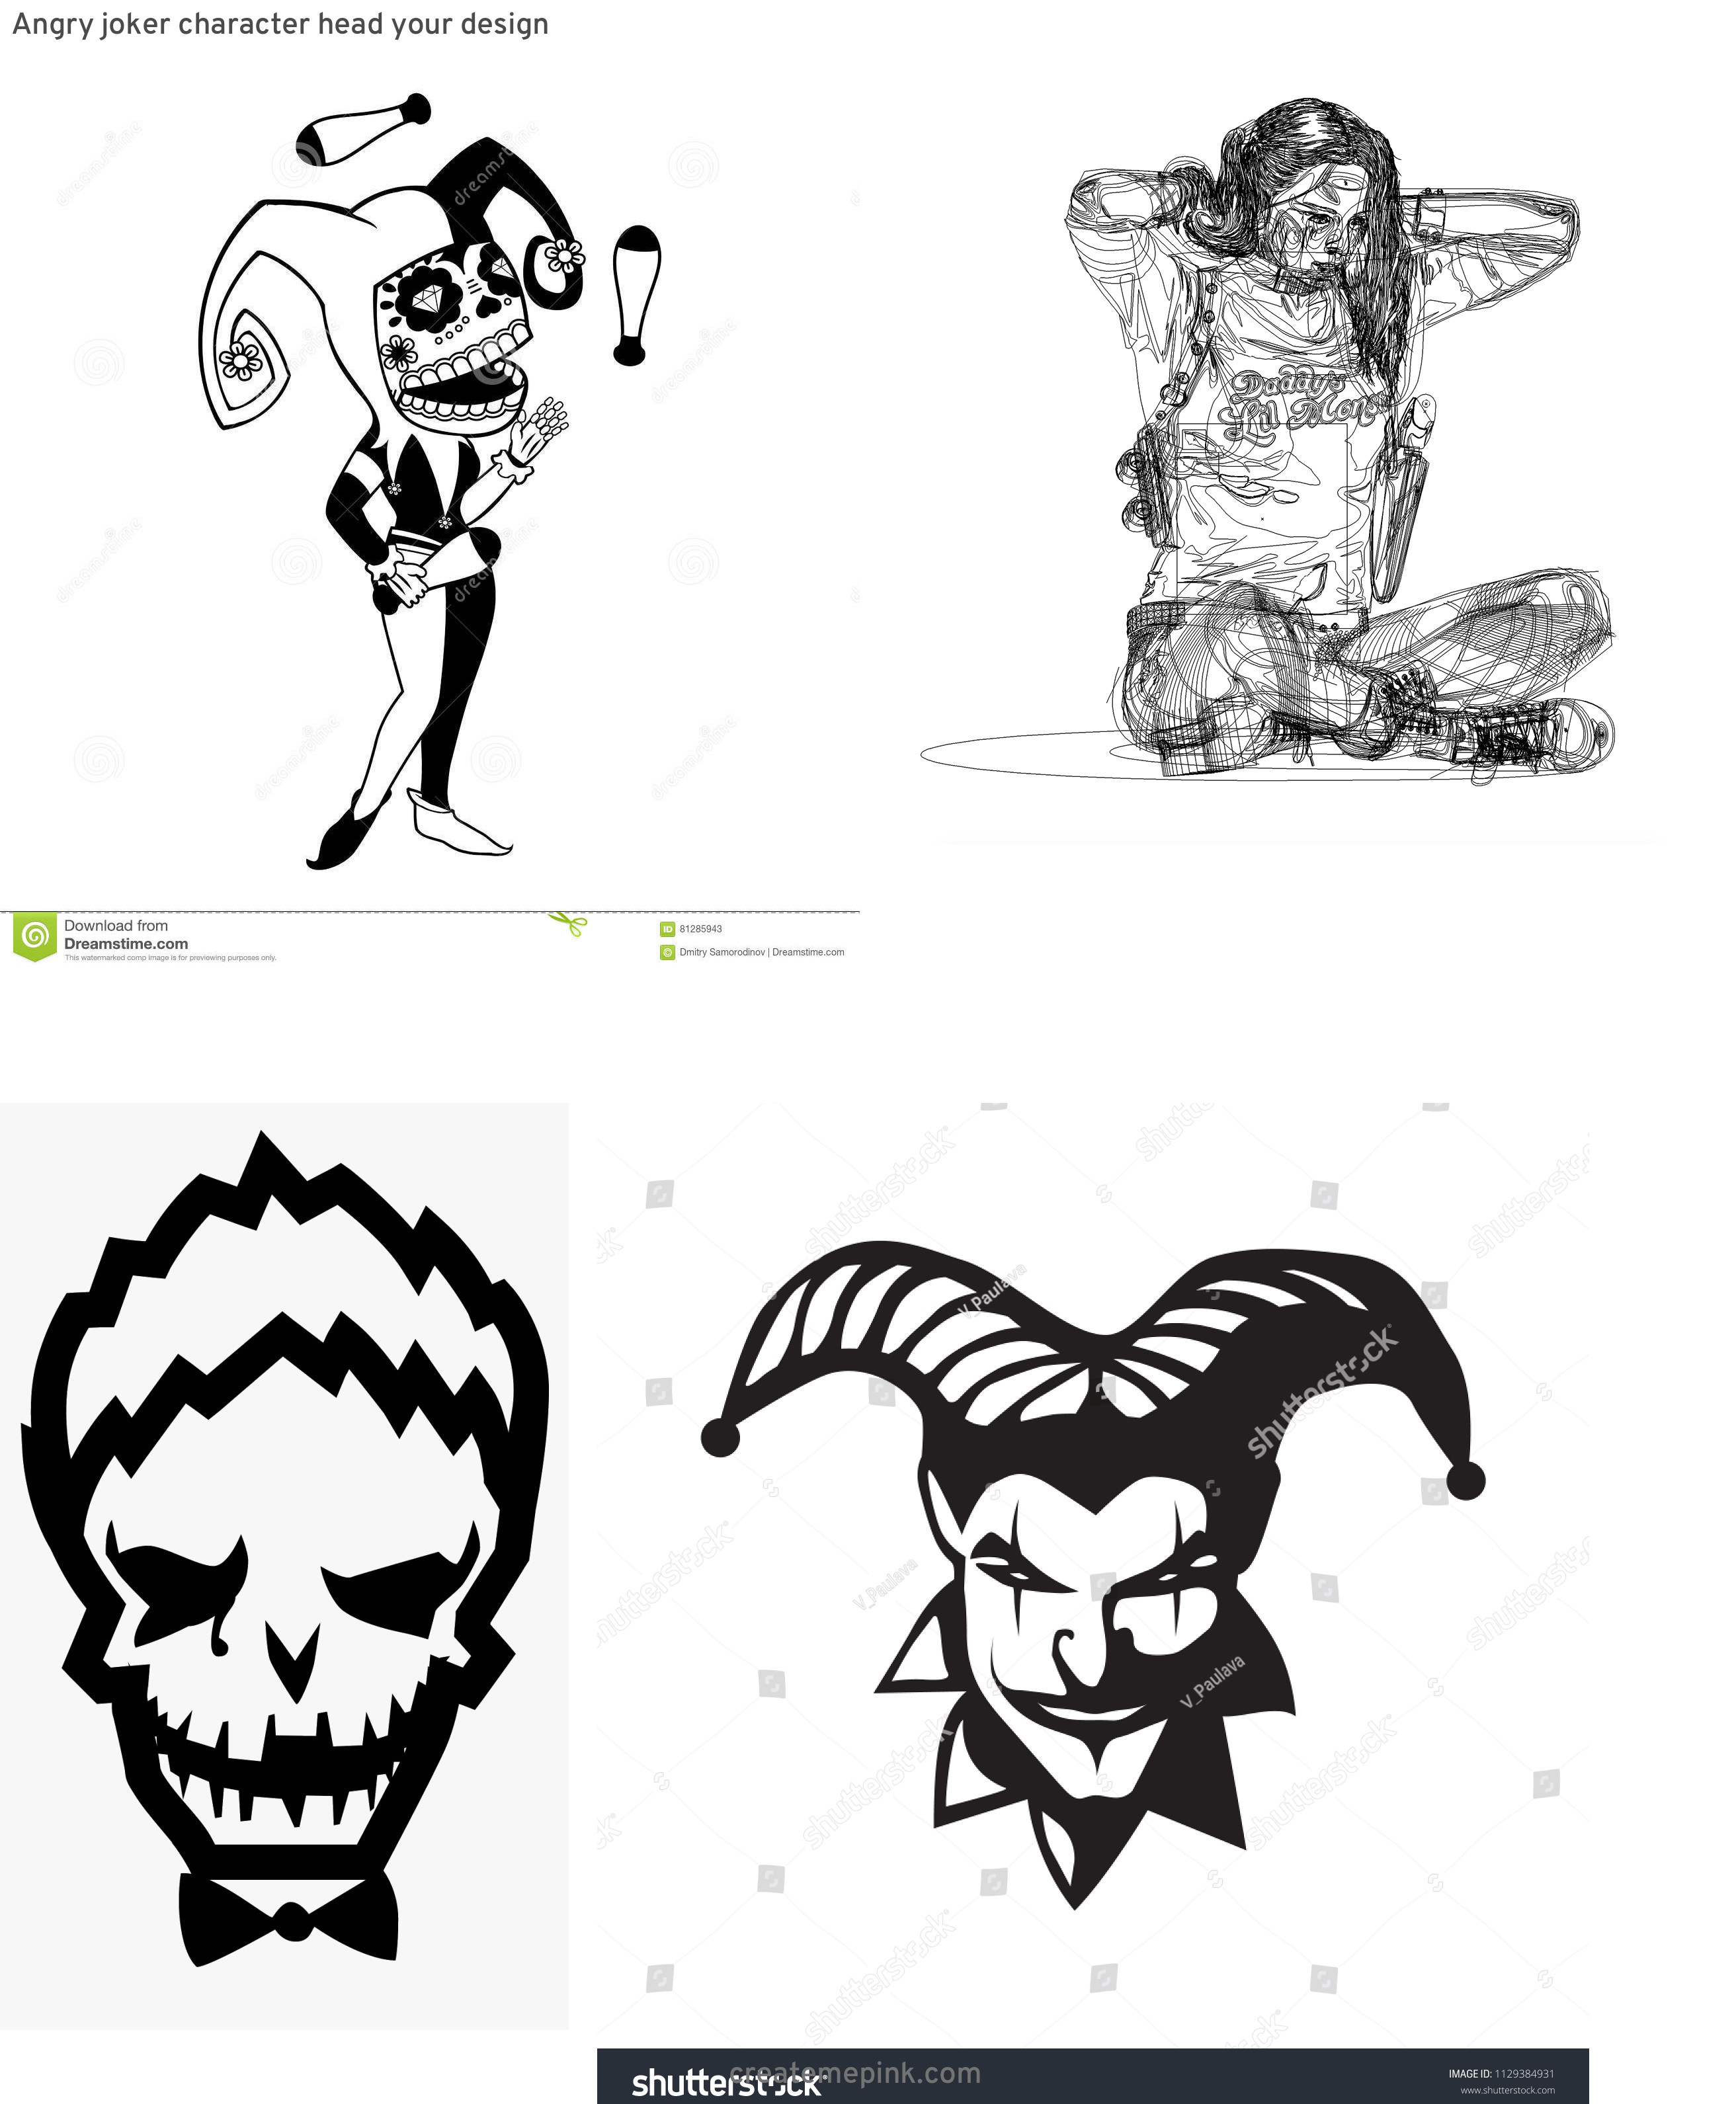 Harley Quinn Black And White Vector: Angry Joker Character Head Your Design